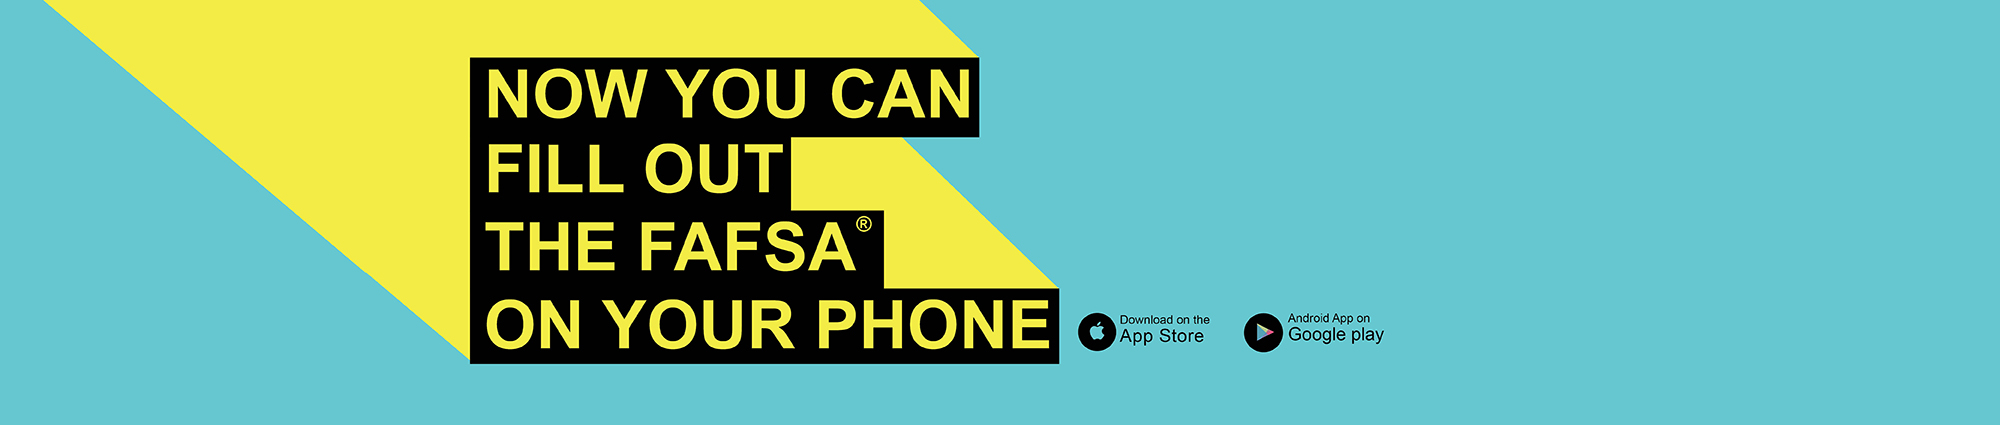 Now you can fill out the FAFSA on your phone!